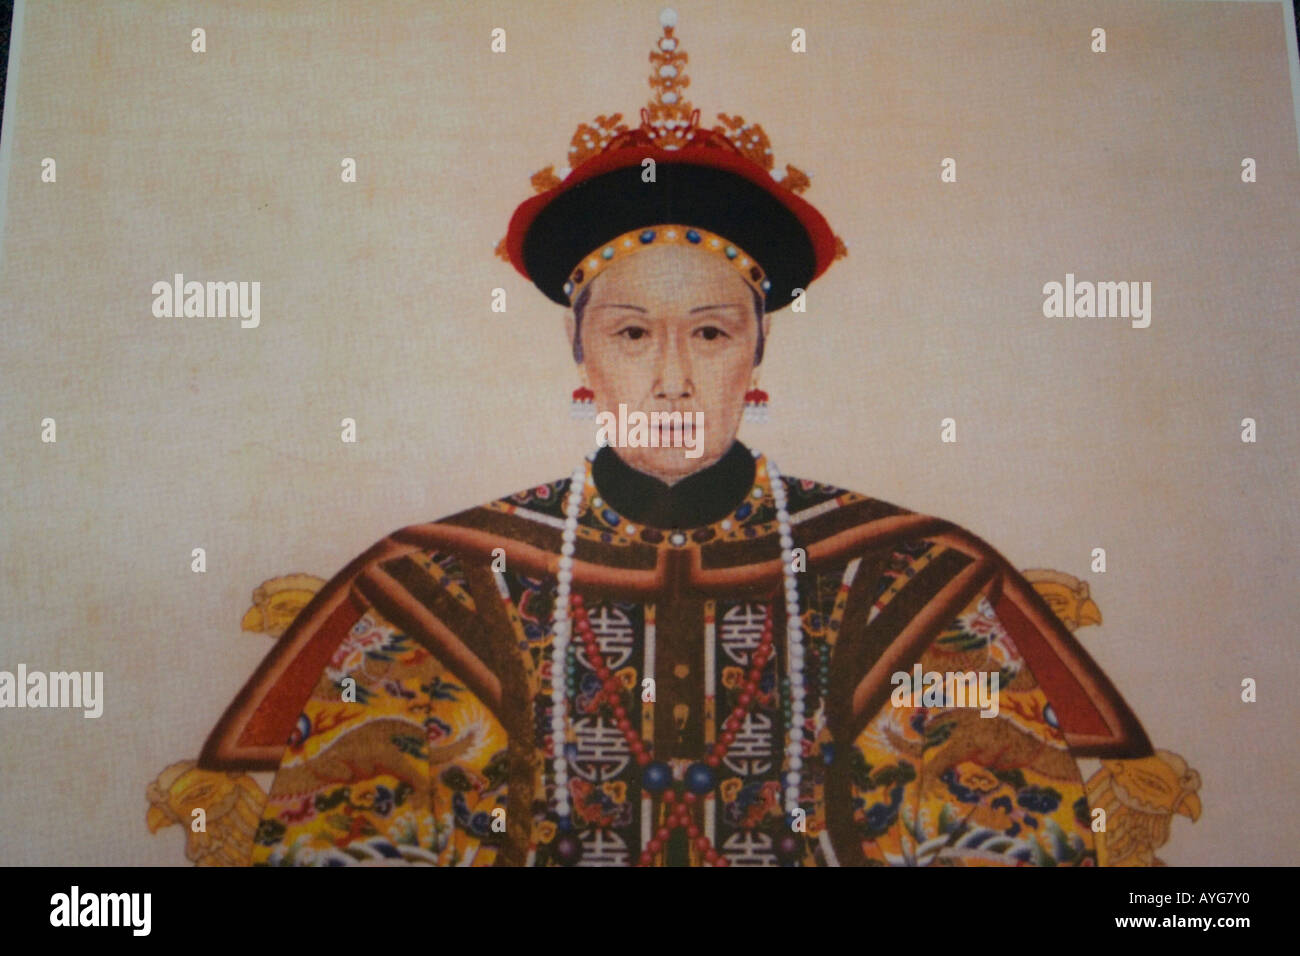 Portrait of Imperial Dowager Concubine Duan Kang Inside the Forbidden City Beijing China - Stock Image